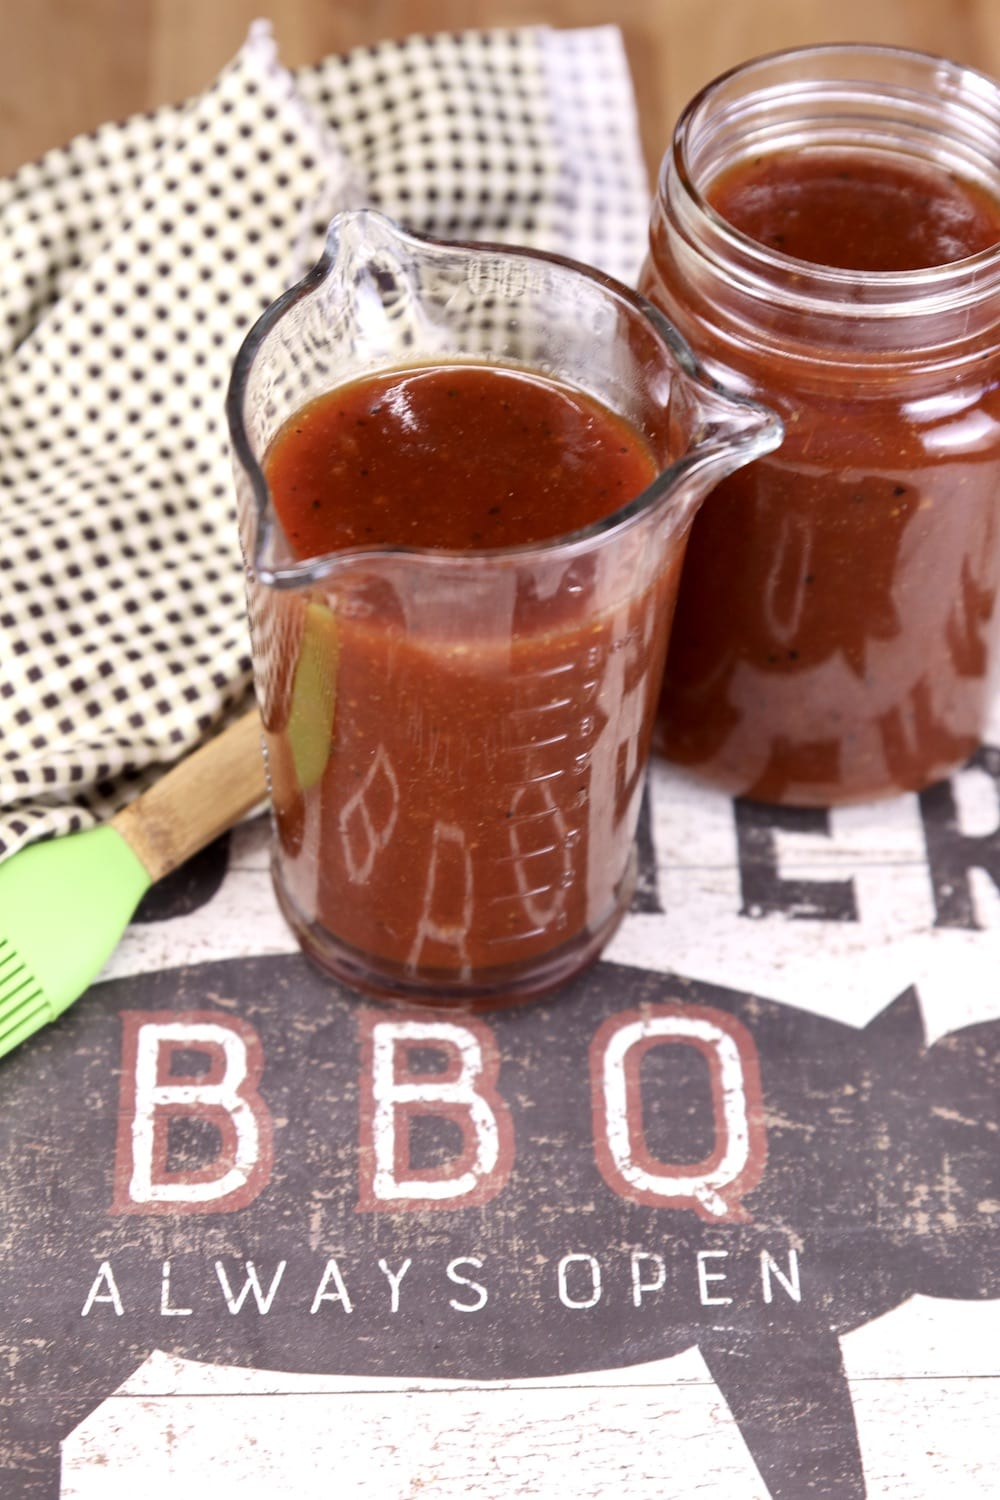 2 jars of bbq sauce on a tray